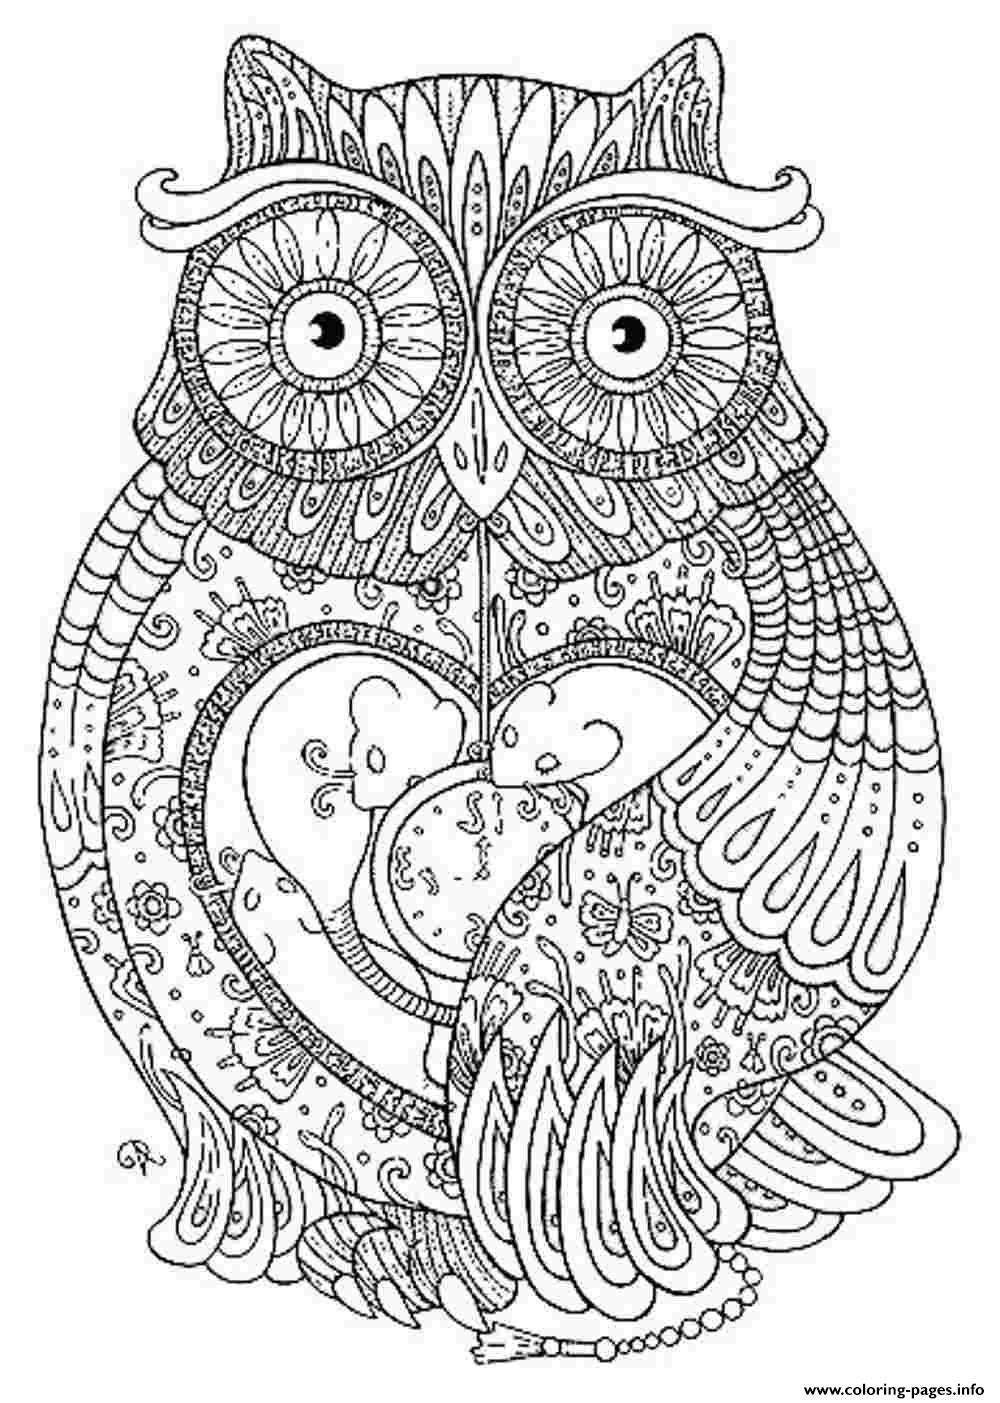 Print animal coloring pages for adults coloring pages | Coloring ...